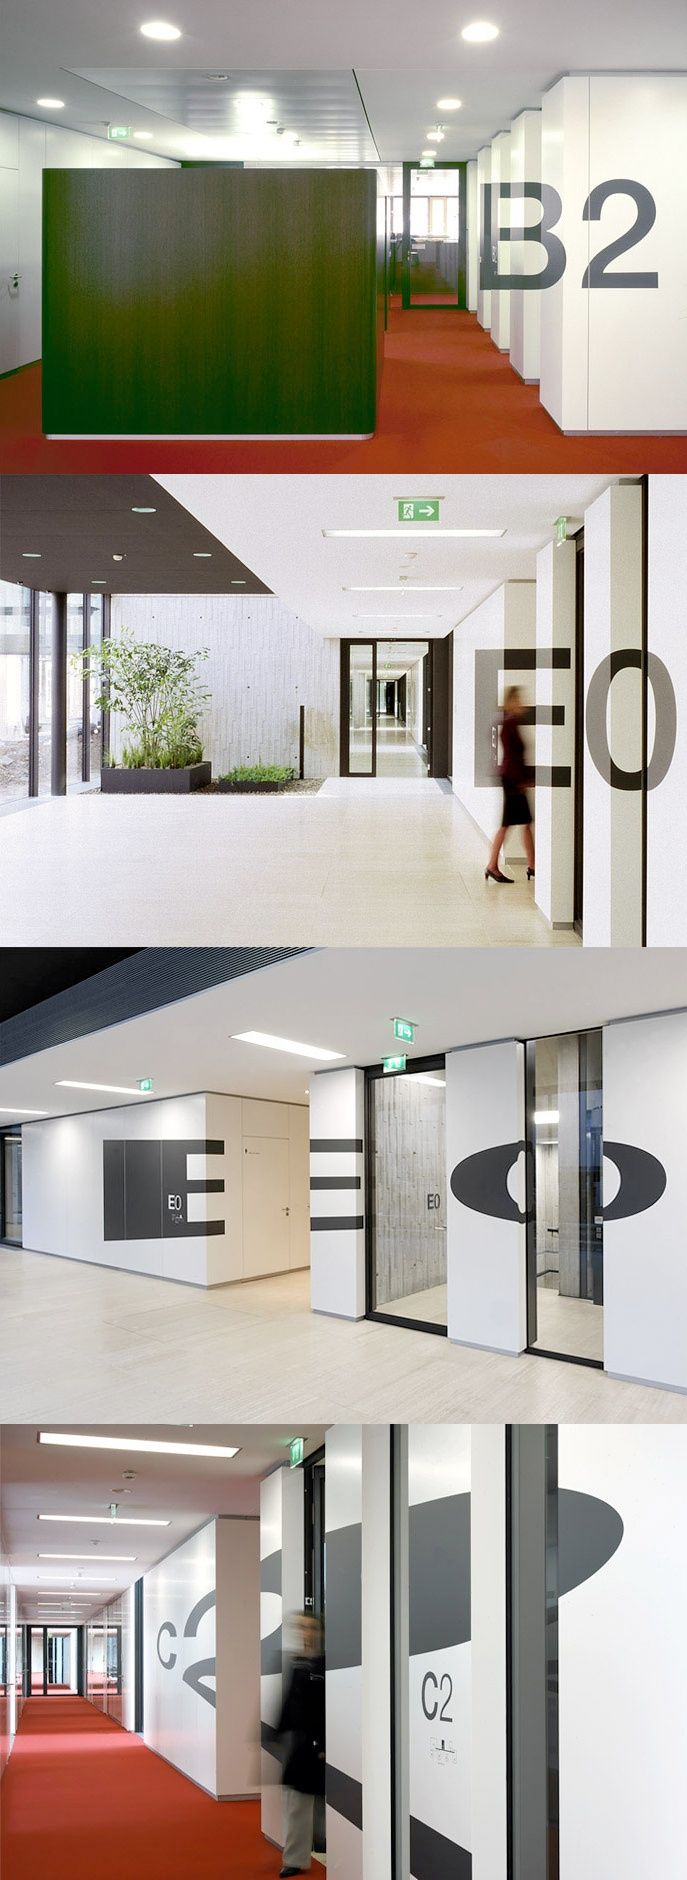 57 best Give Light images on Pinterest | Light switches ...